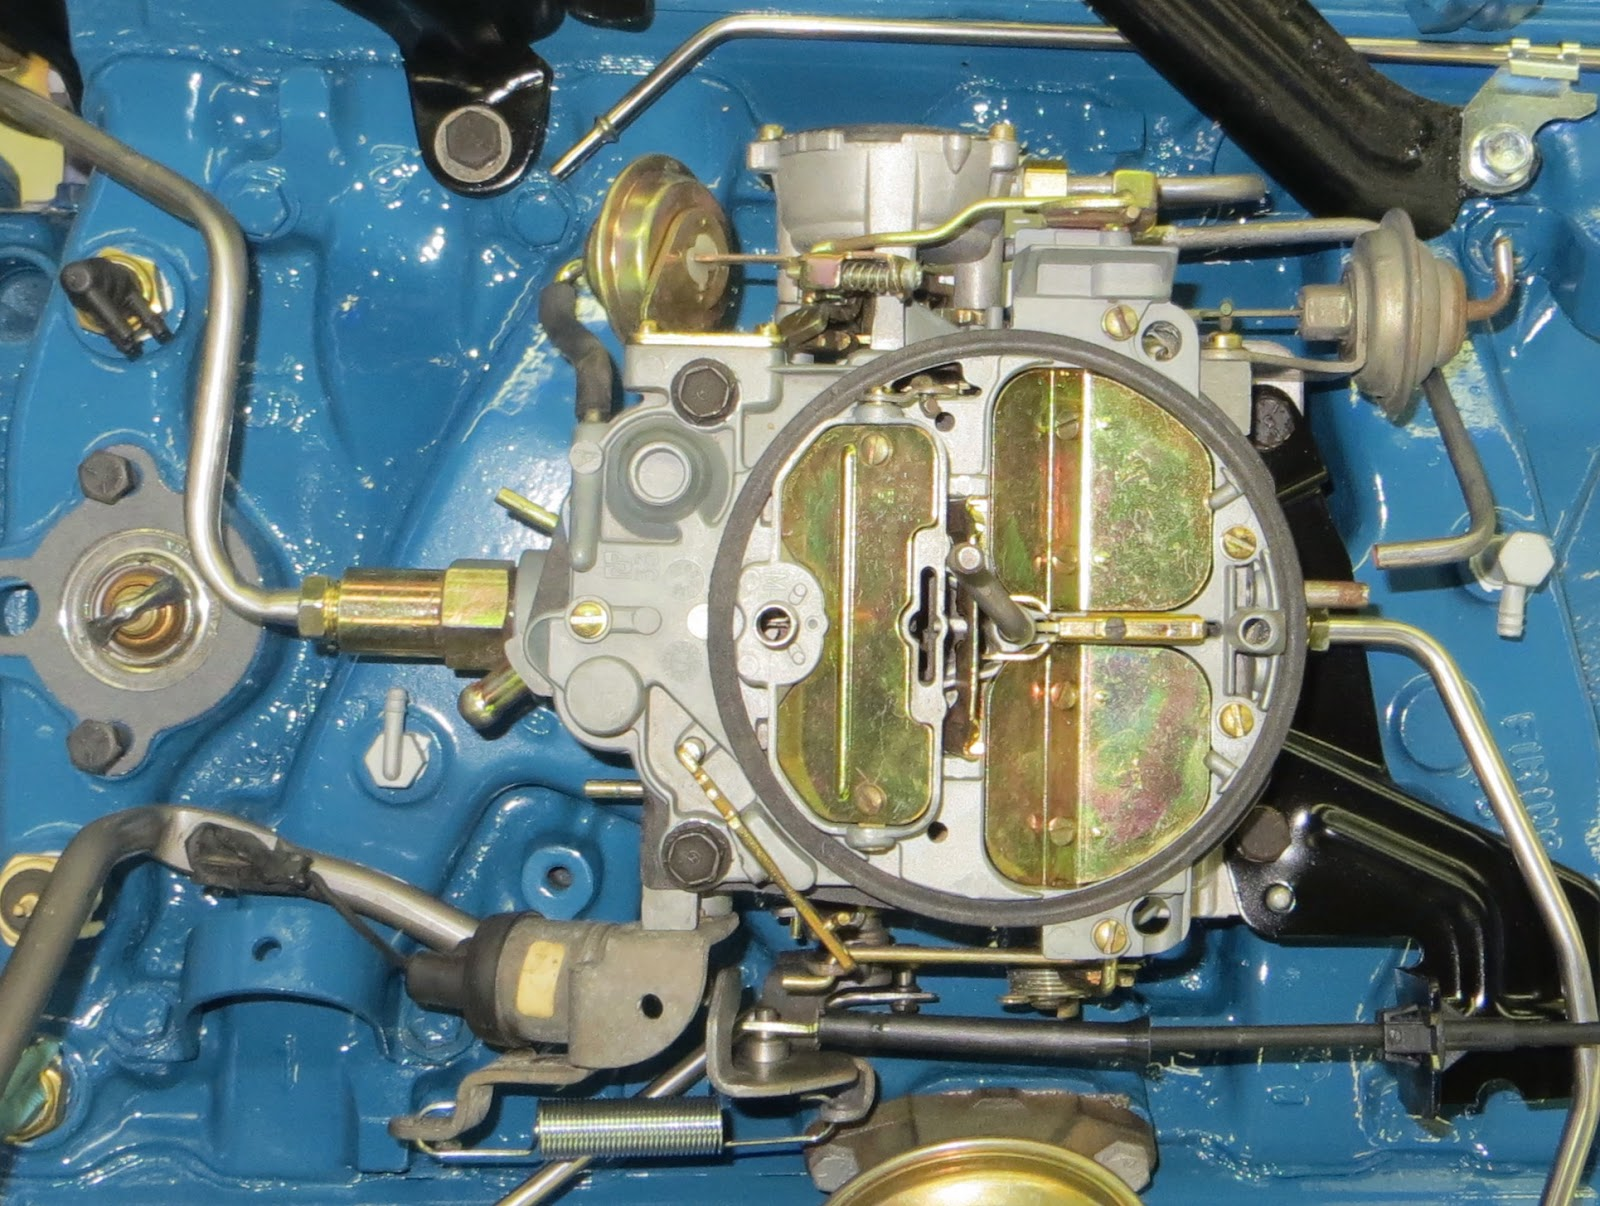 medium resolution of 17058553 quadrajet 4 barrel carburetor with no vacuum lines connected